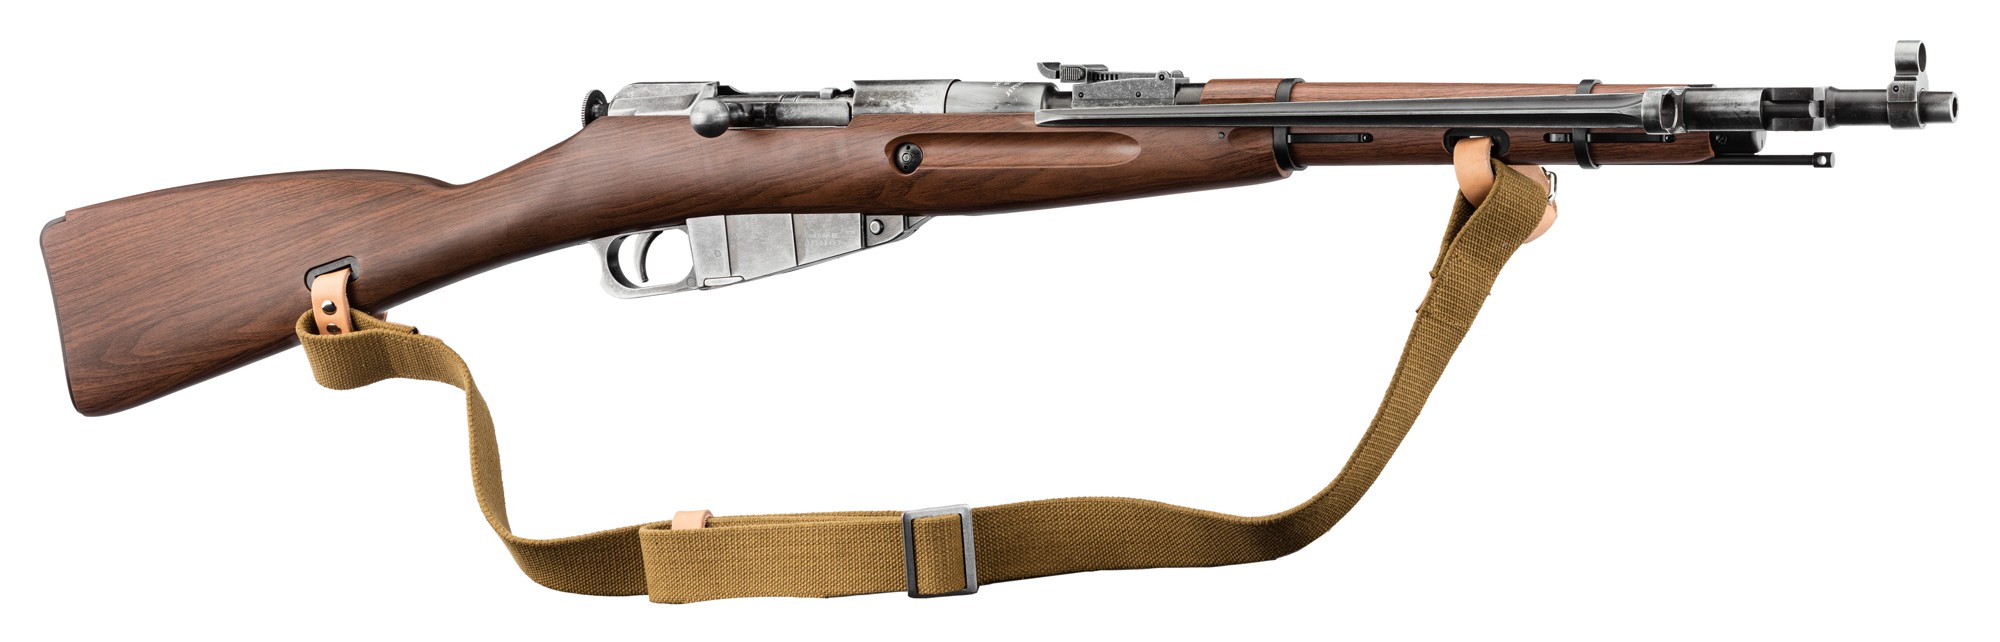 Photo Mosin-Nagant M44 Co2 OVERLORD WWII Series